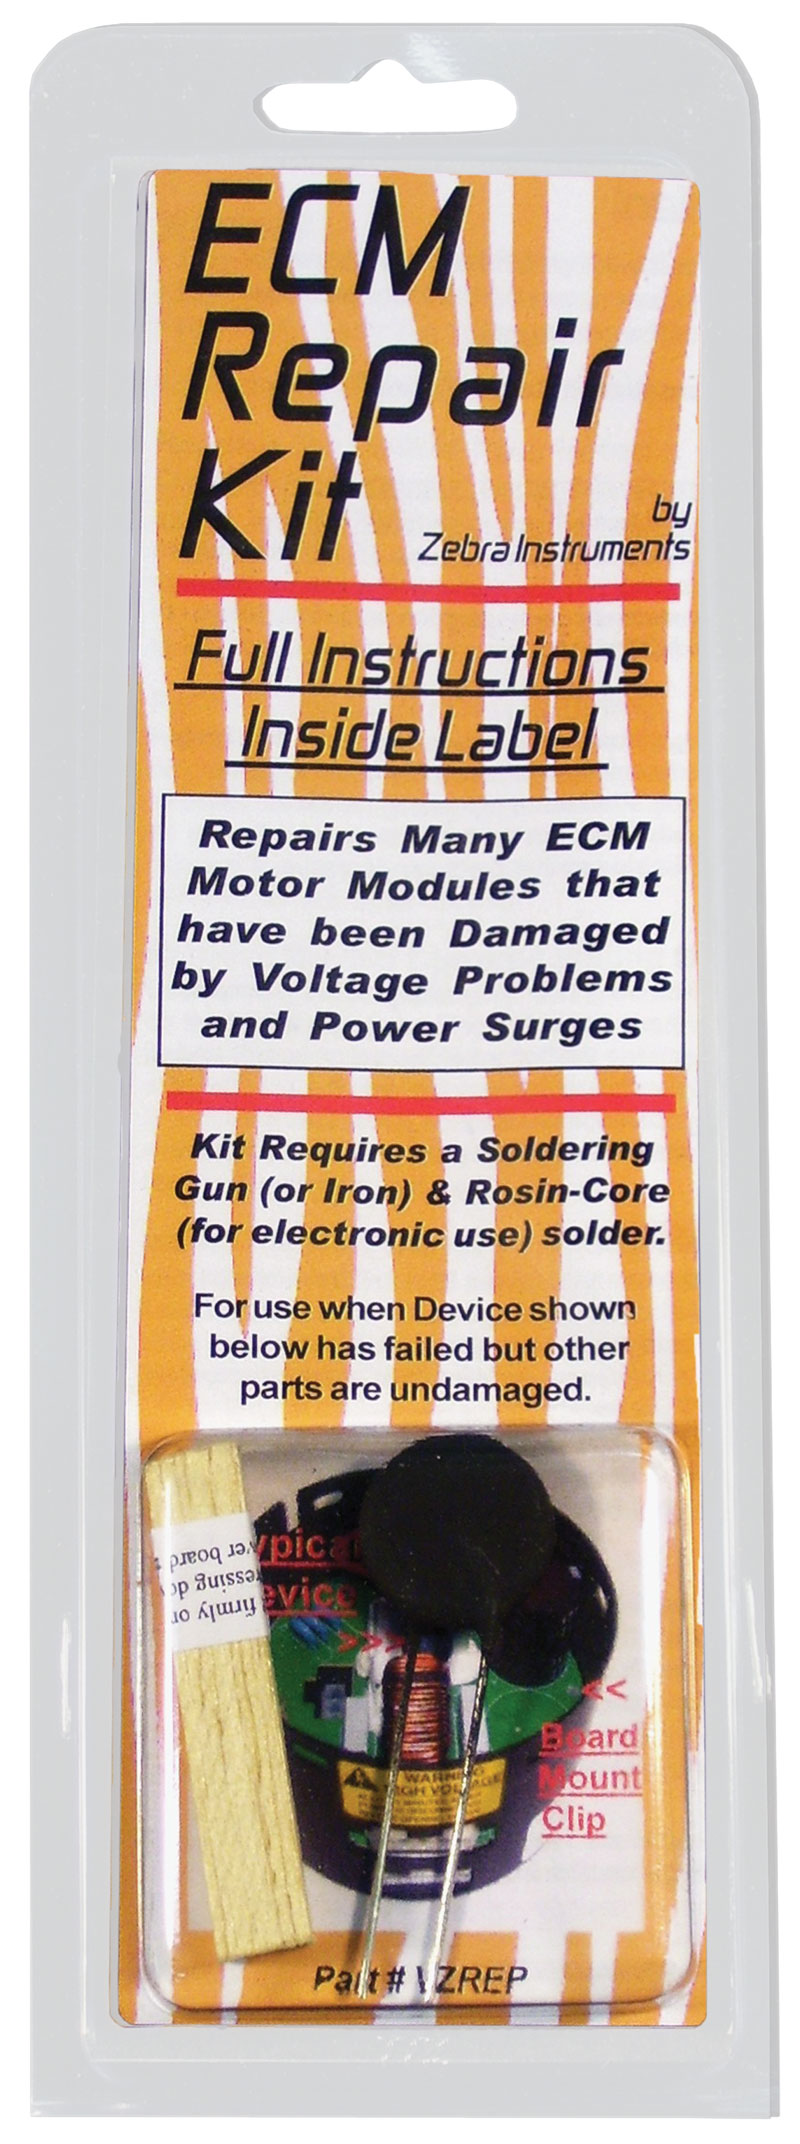 Rheem Replacement Parts Division Genteq Ecm Motor Wiring Diagram Kit Includes Repair Components For 23 Modules That Have Been Damaged By Voltage Problems And Power Surges Requires Use Of Soldering Iron